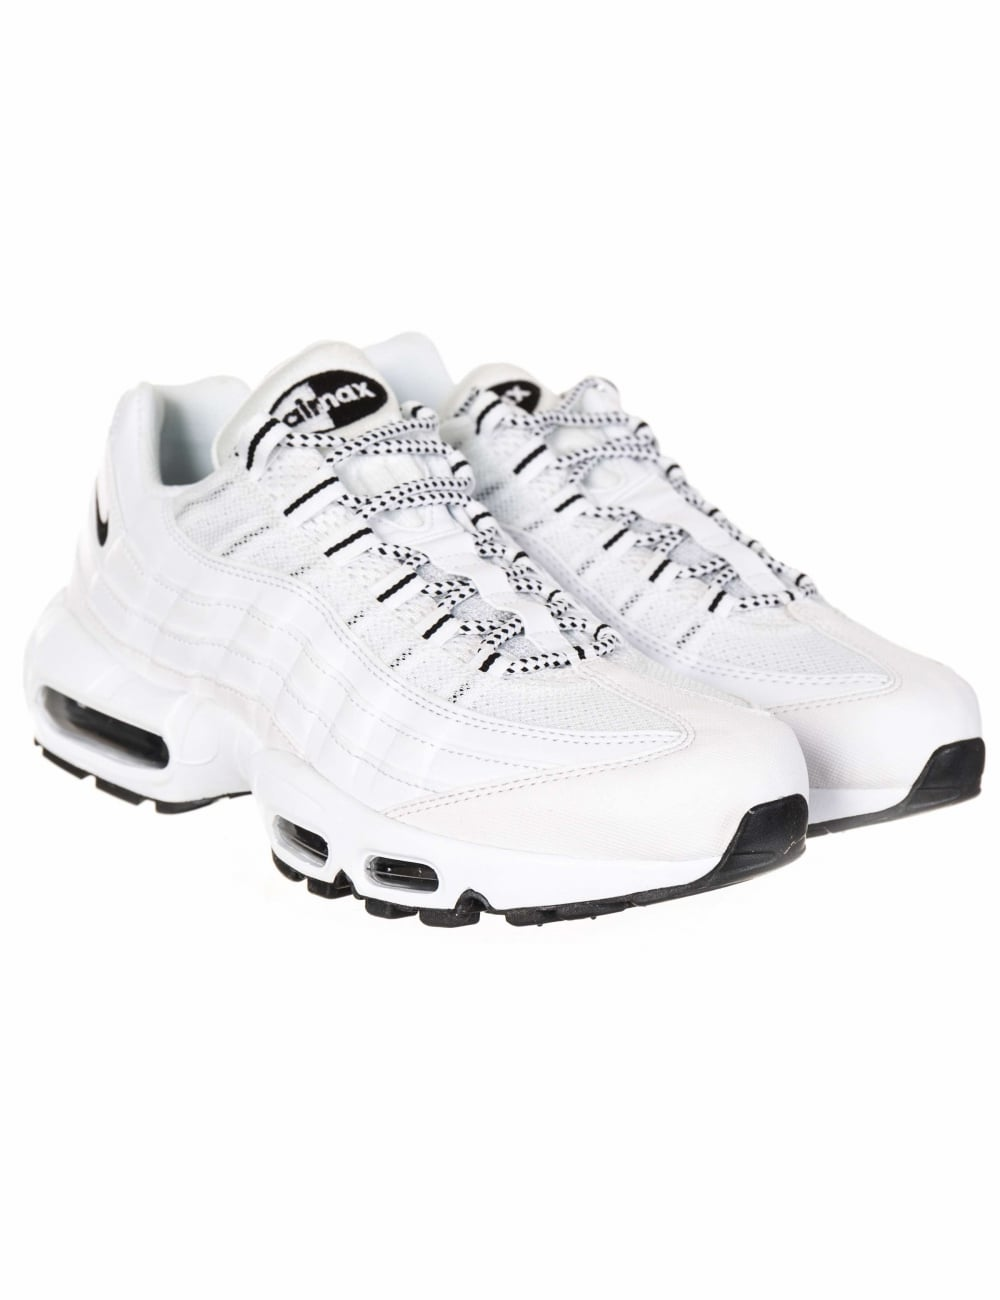 size 40 cf134 acb9f Air Max 95 Trainers - White/Black